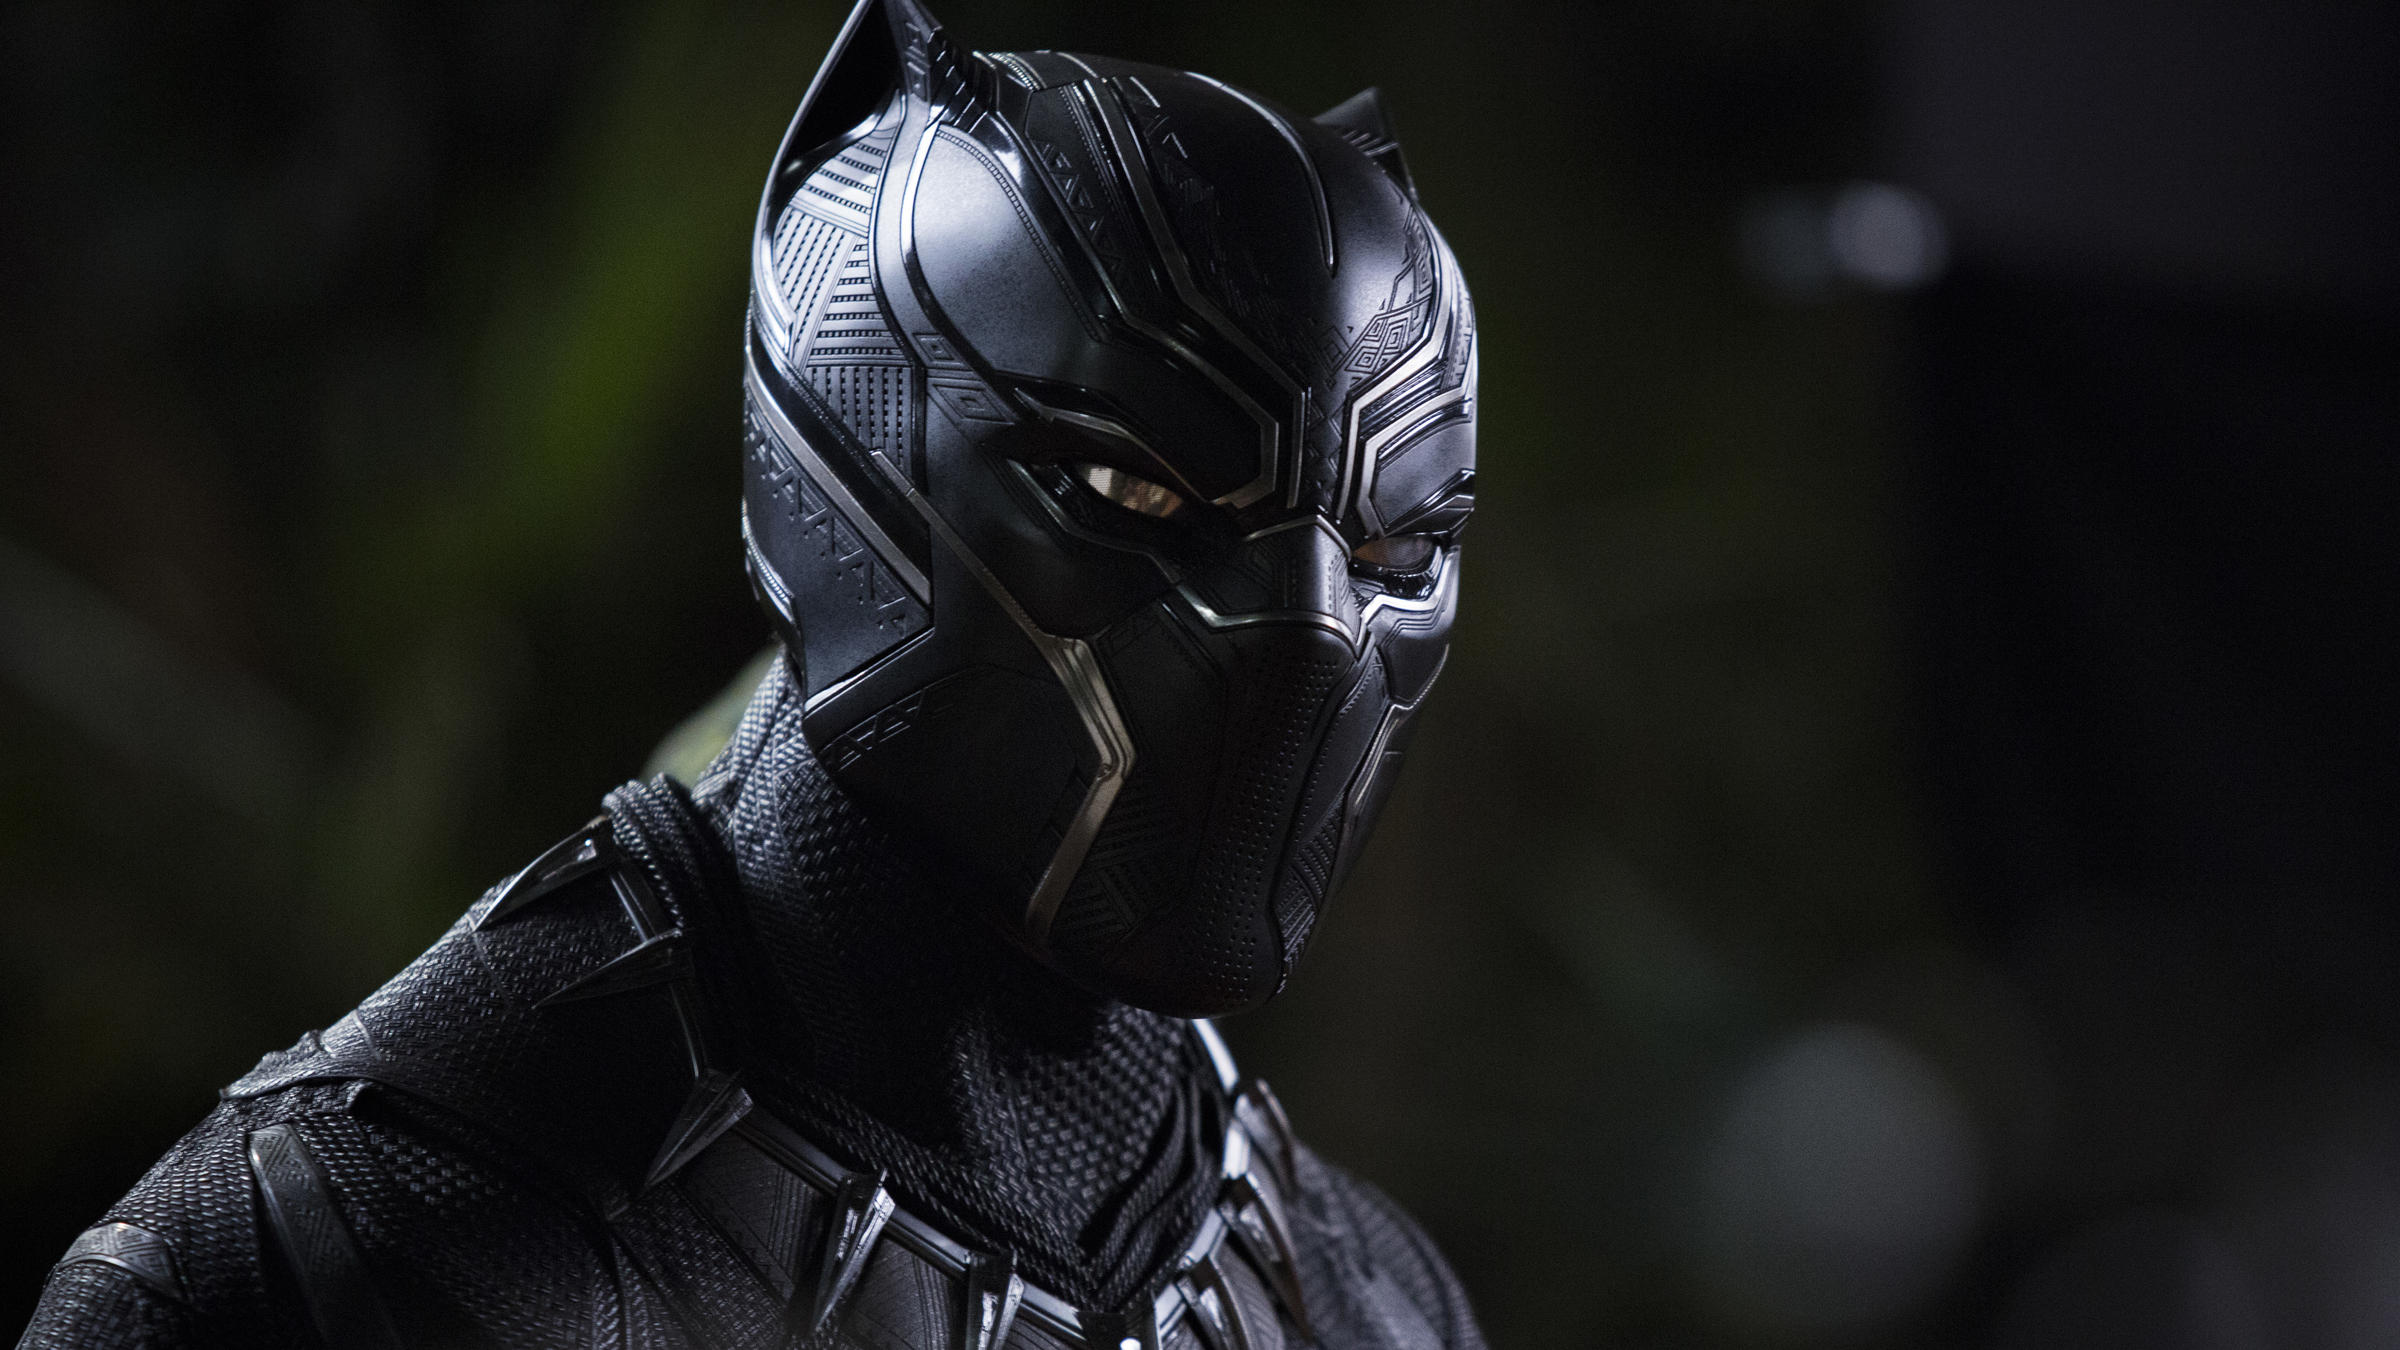 25f616930 The triangular patterns visible in Chadwick Boseman's Black Panther suit  reflect what costume designer Ruth Carter calls